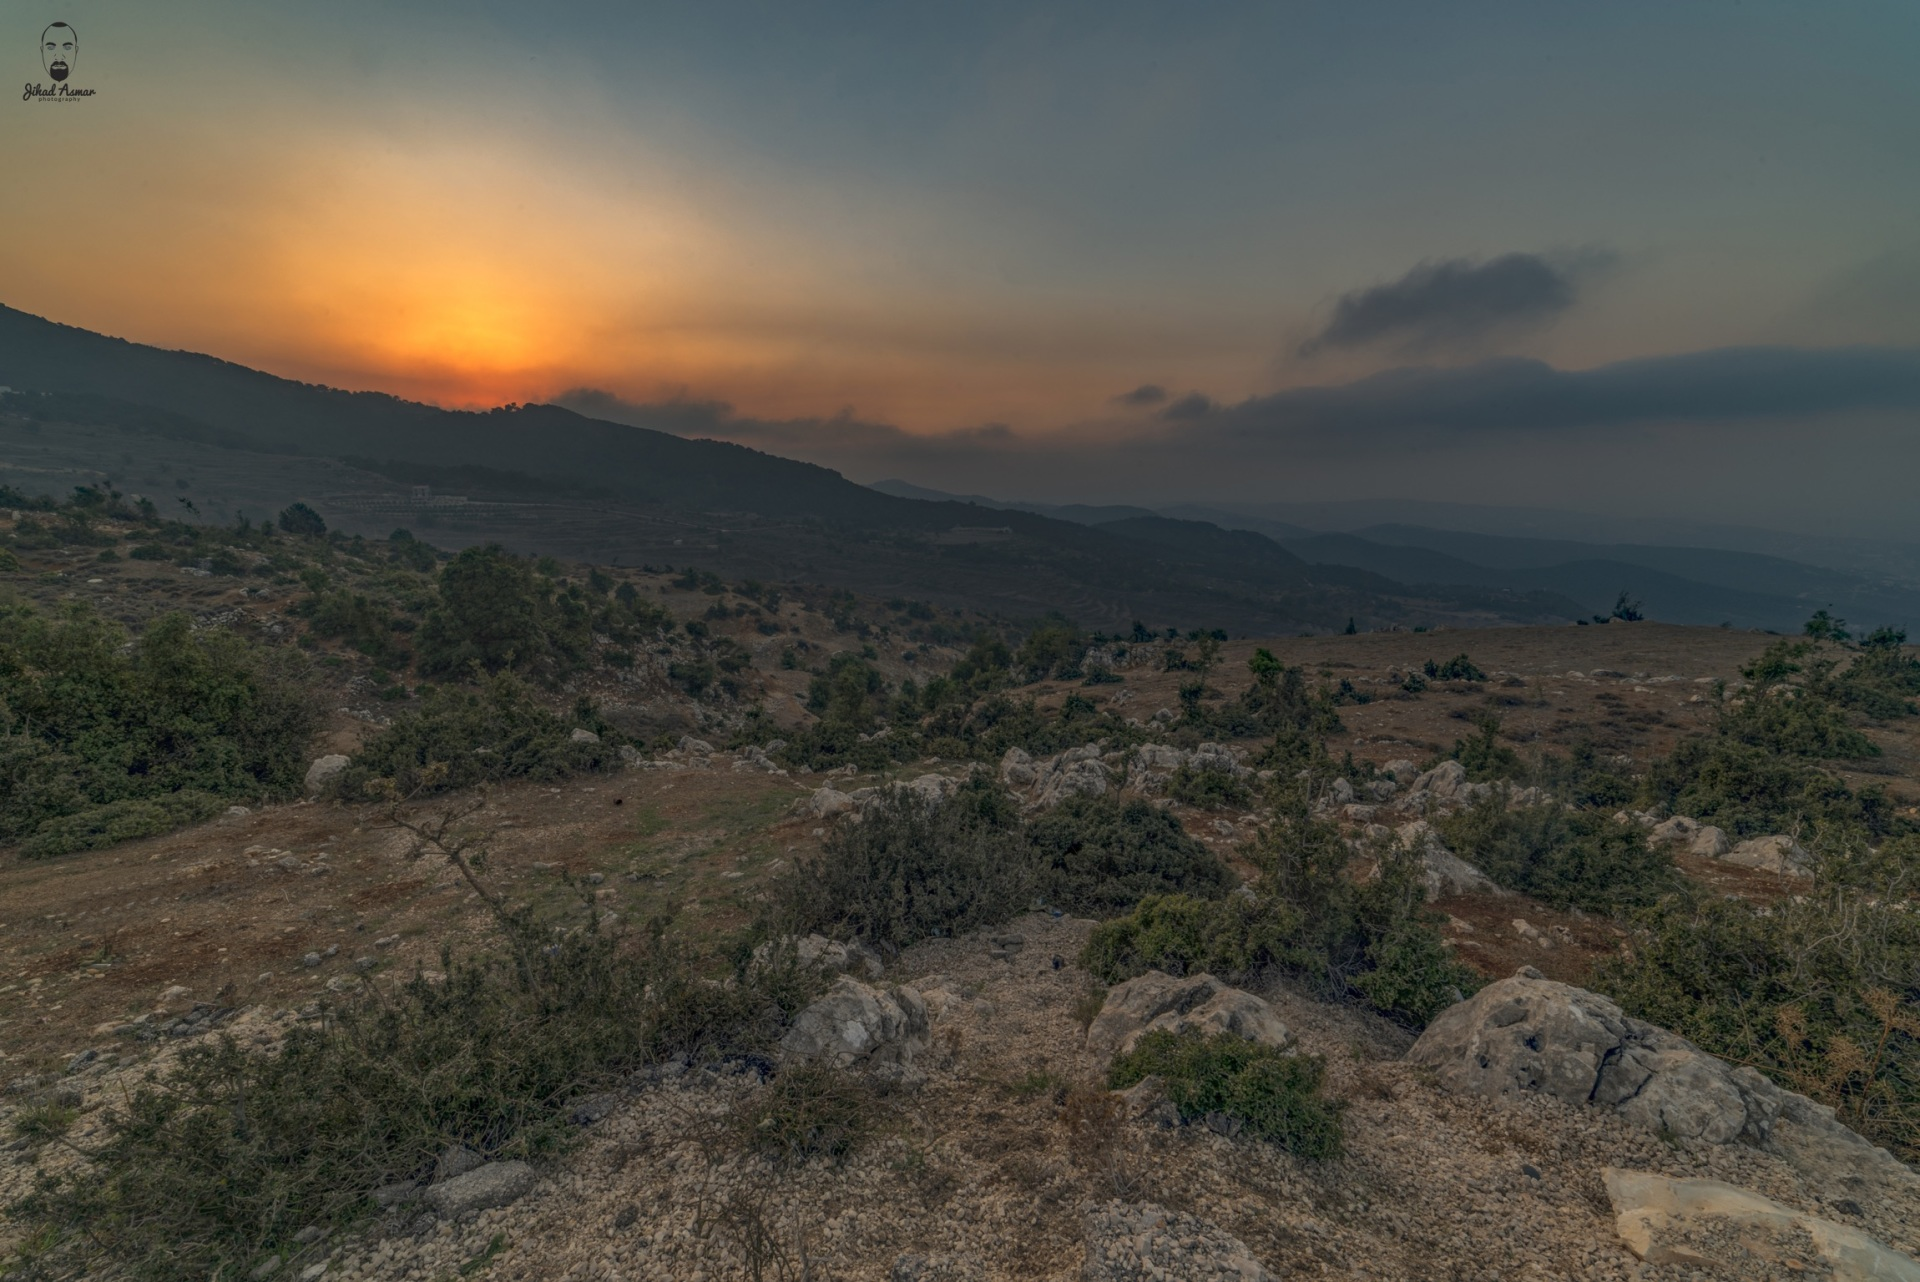 Lebanese Landscape Photographer, Lebanese Photographer, Sunset lebanon photography